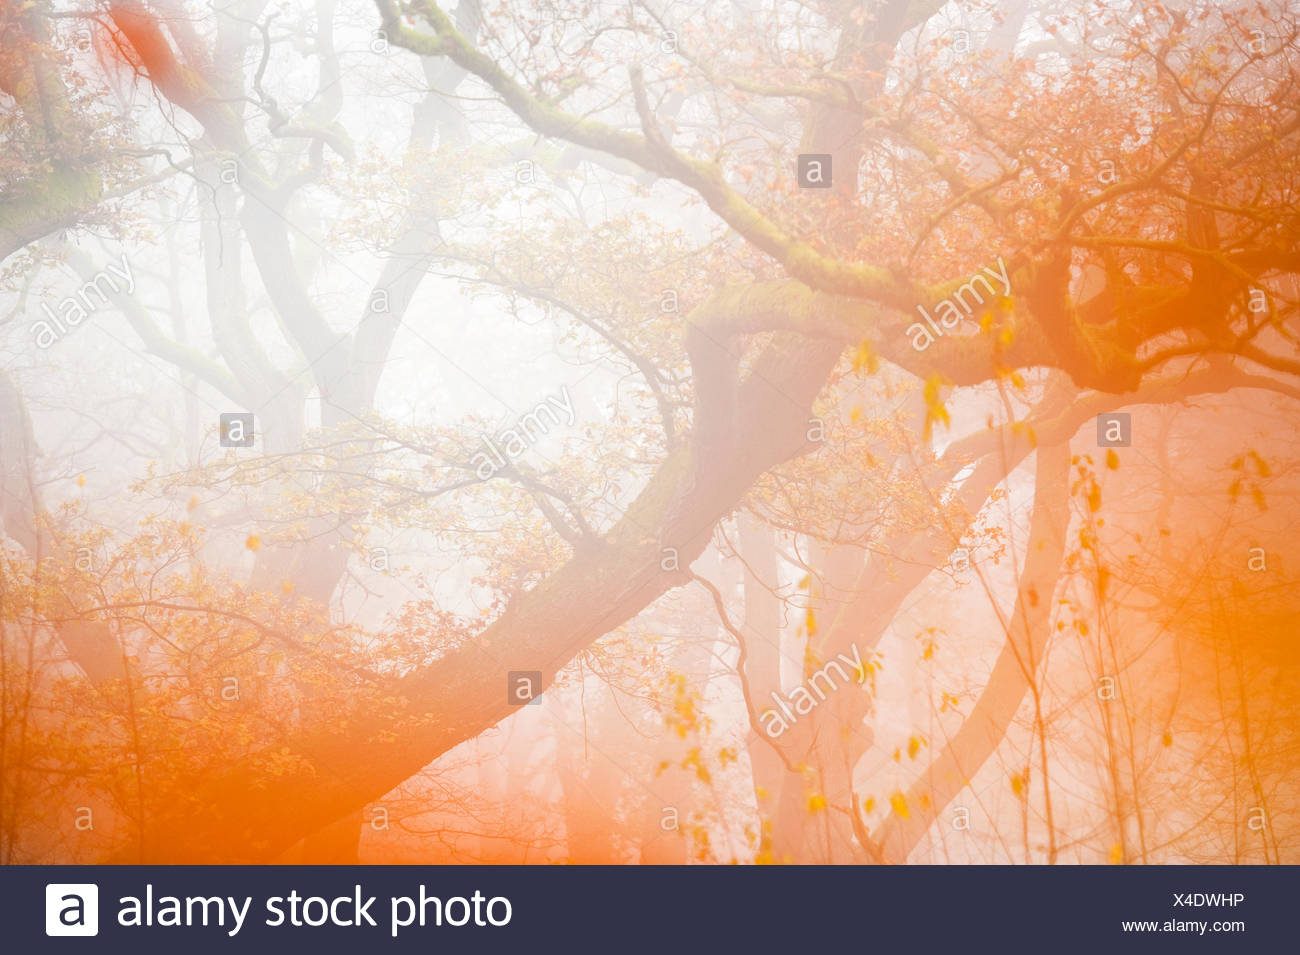 centuries old oak trees in the Netherlands during autumn Stock Photo